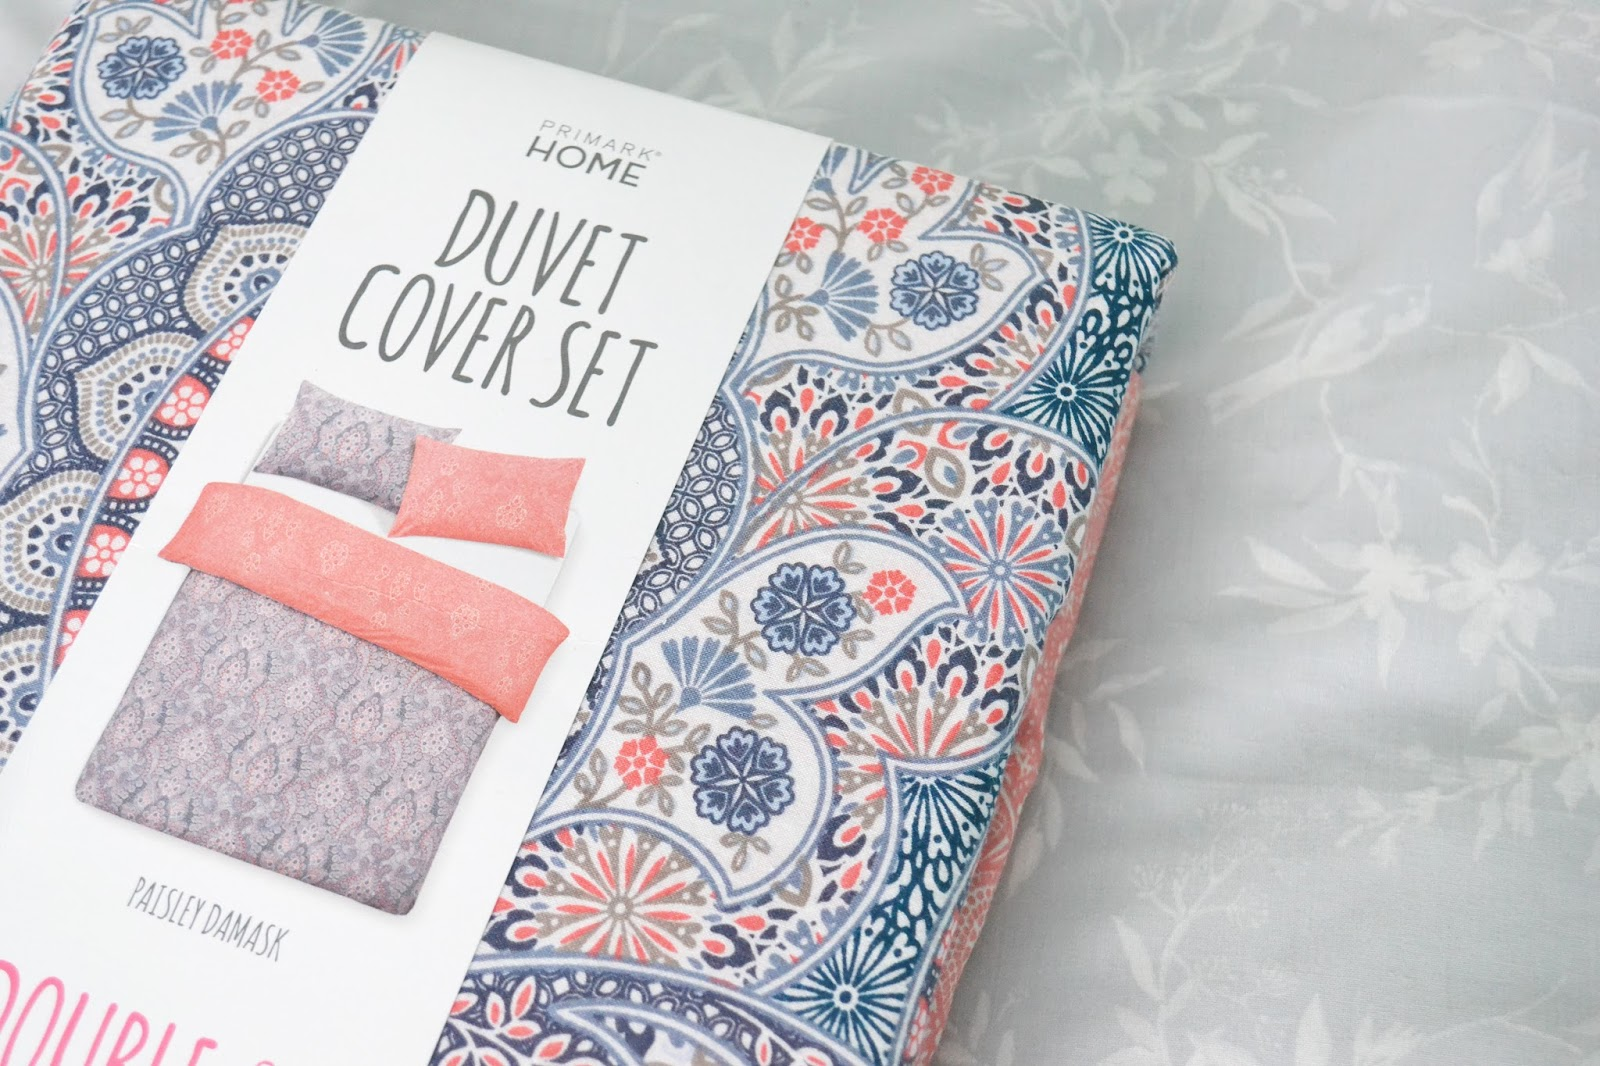 I Love Bedding As Sad That May Sound Actually Went In Primark Intending To The Fairisle Christmas Duvet Set But Couldn T Bring Myself It